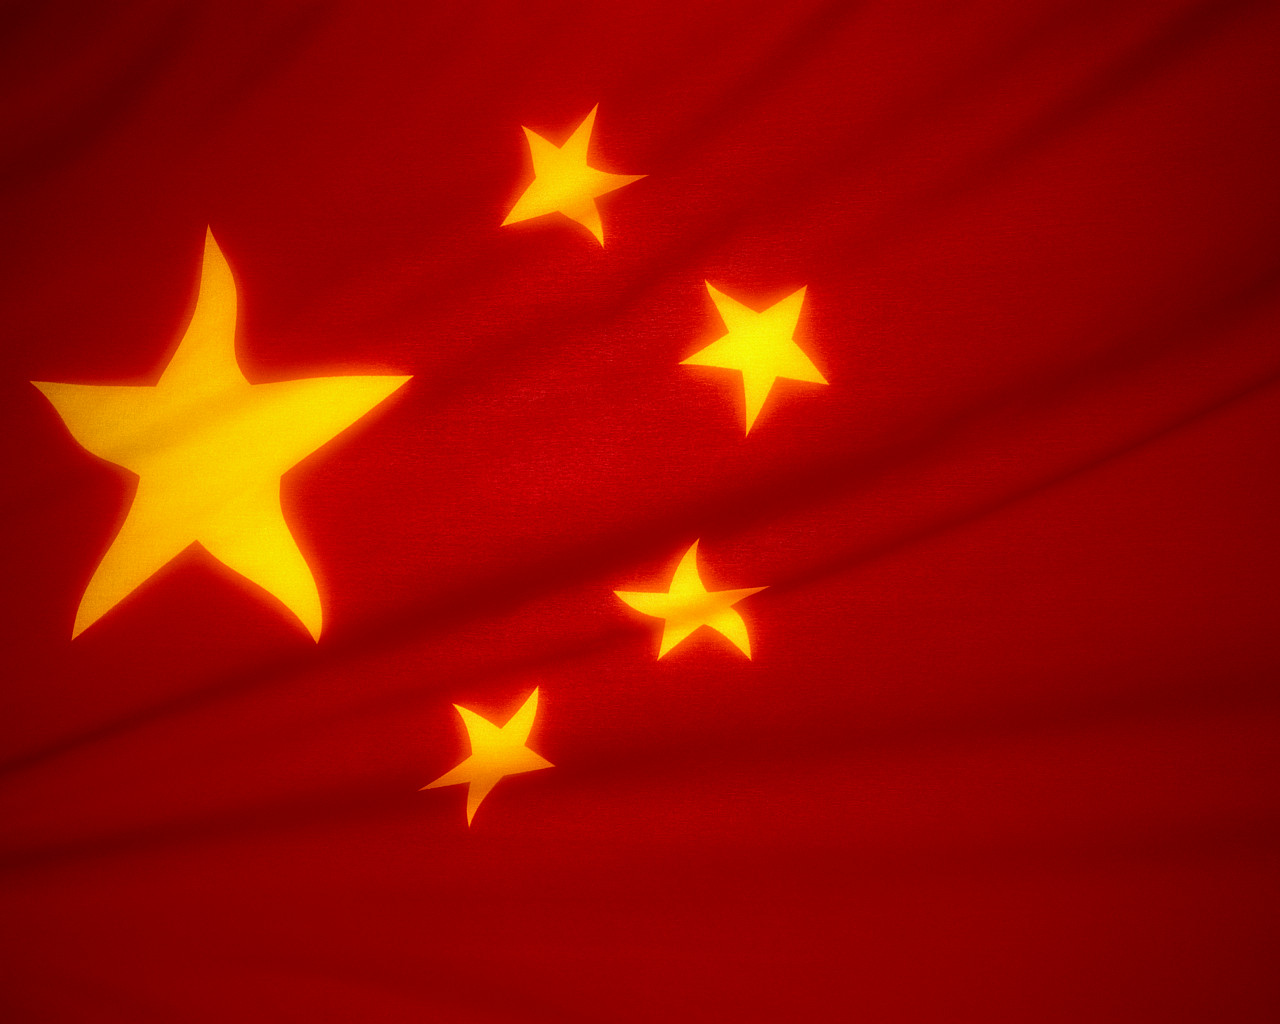 There's no need to be concerned about China's declining economic growth